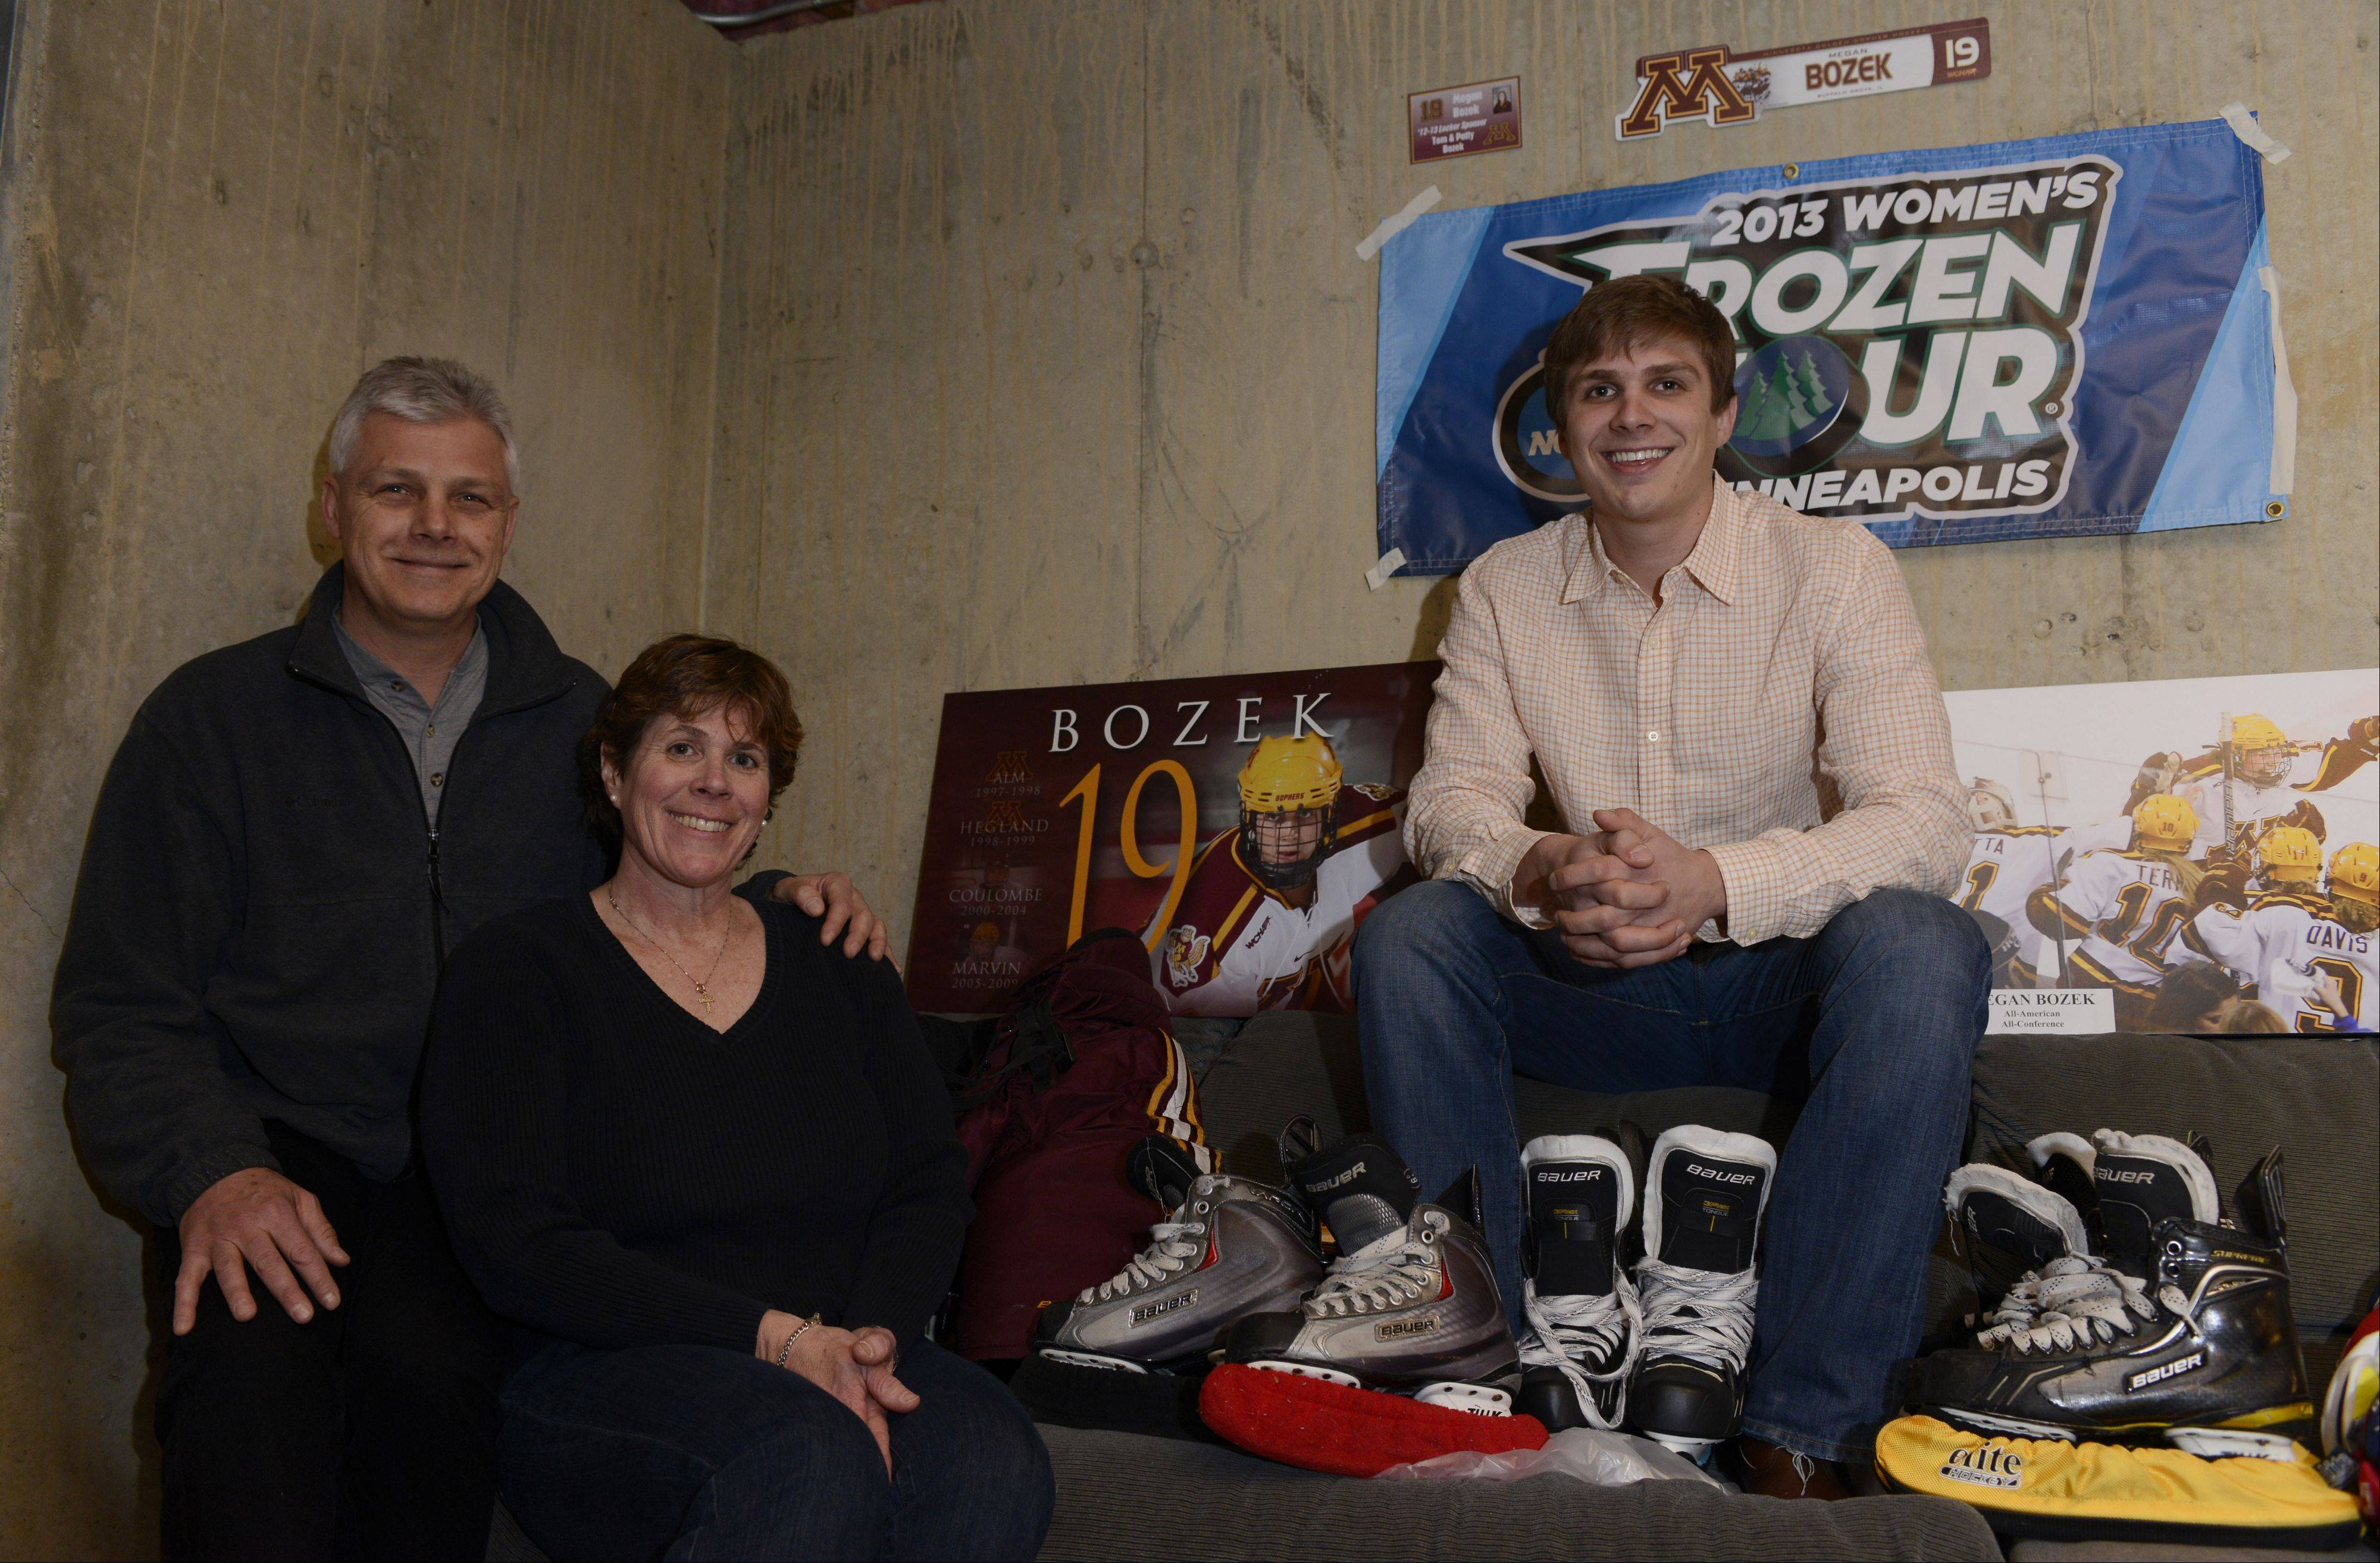 Patti and Tom Bozek of Buffalo Grove, shown with their son Stephen, are the parents of U.S. Olympic hockey player Megan Bozek.